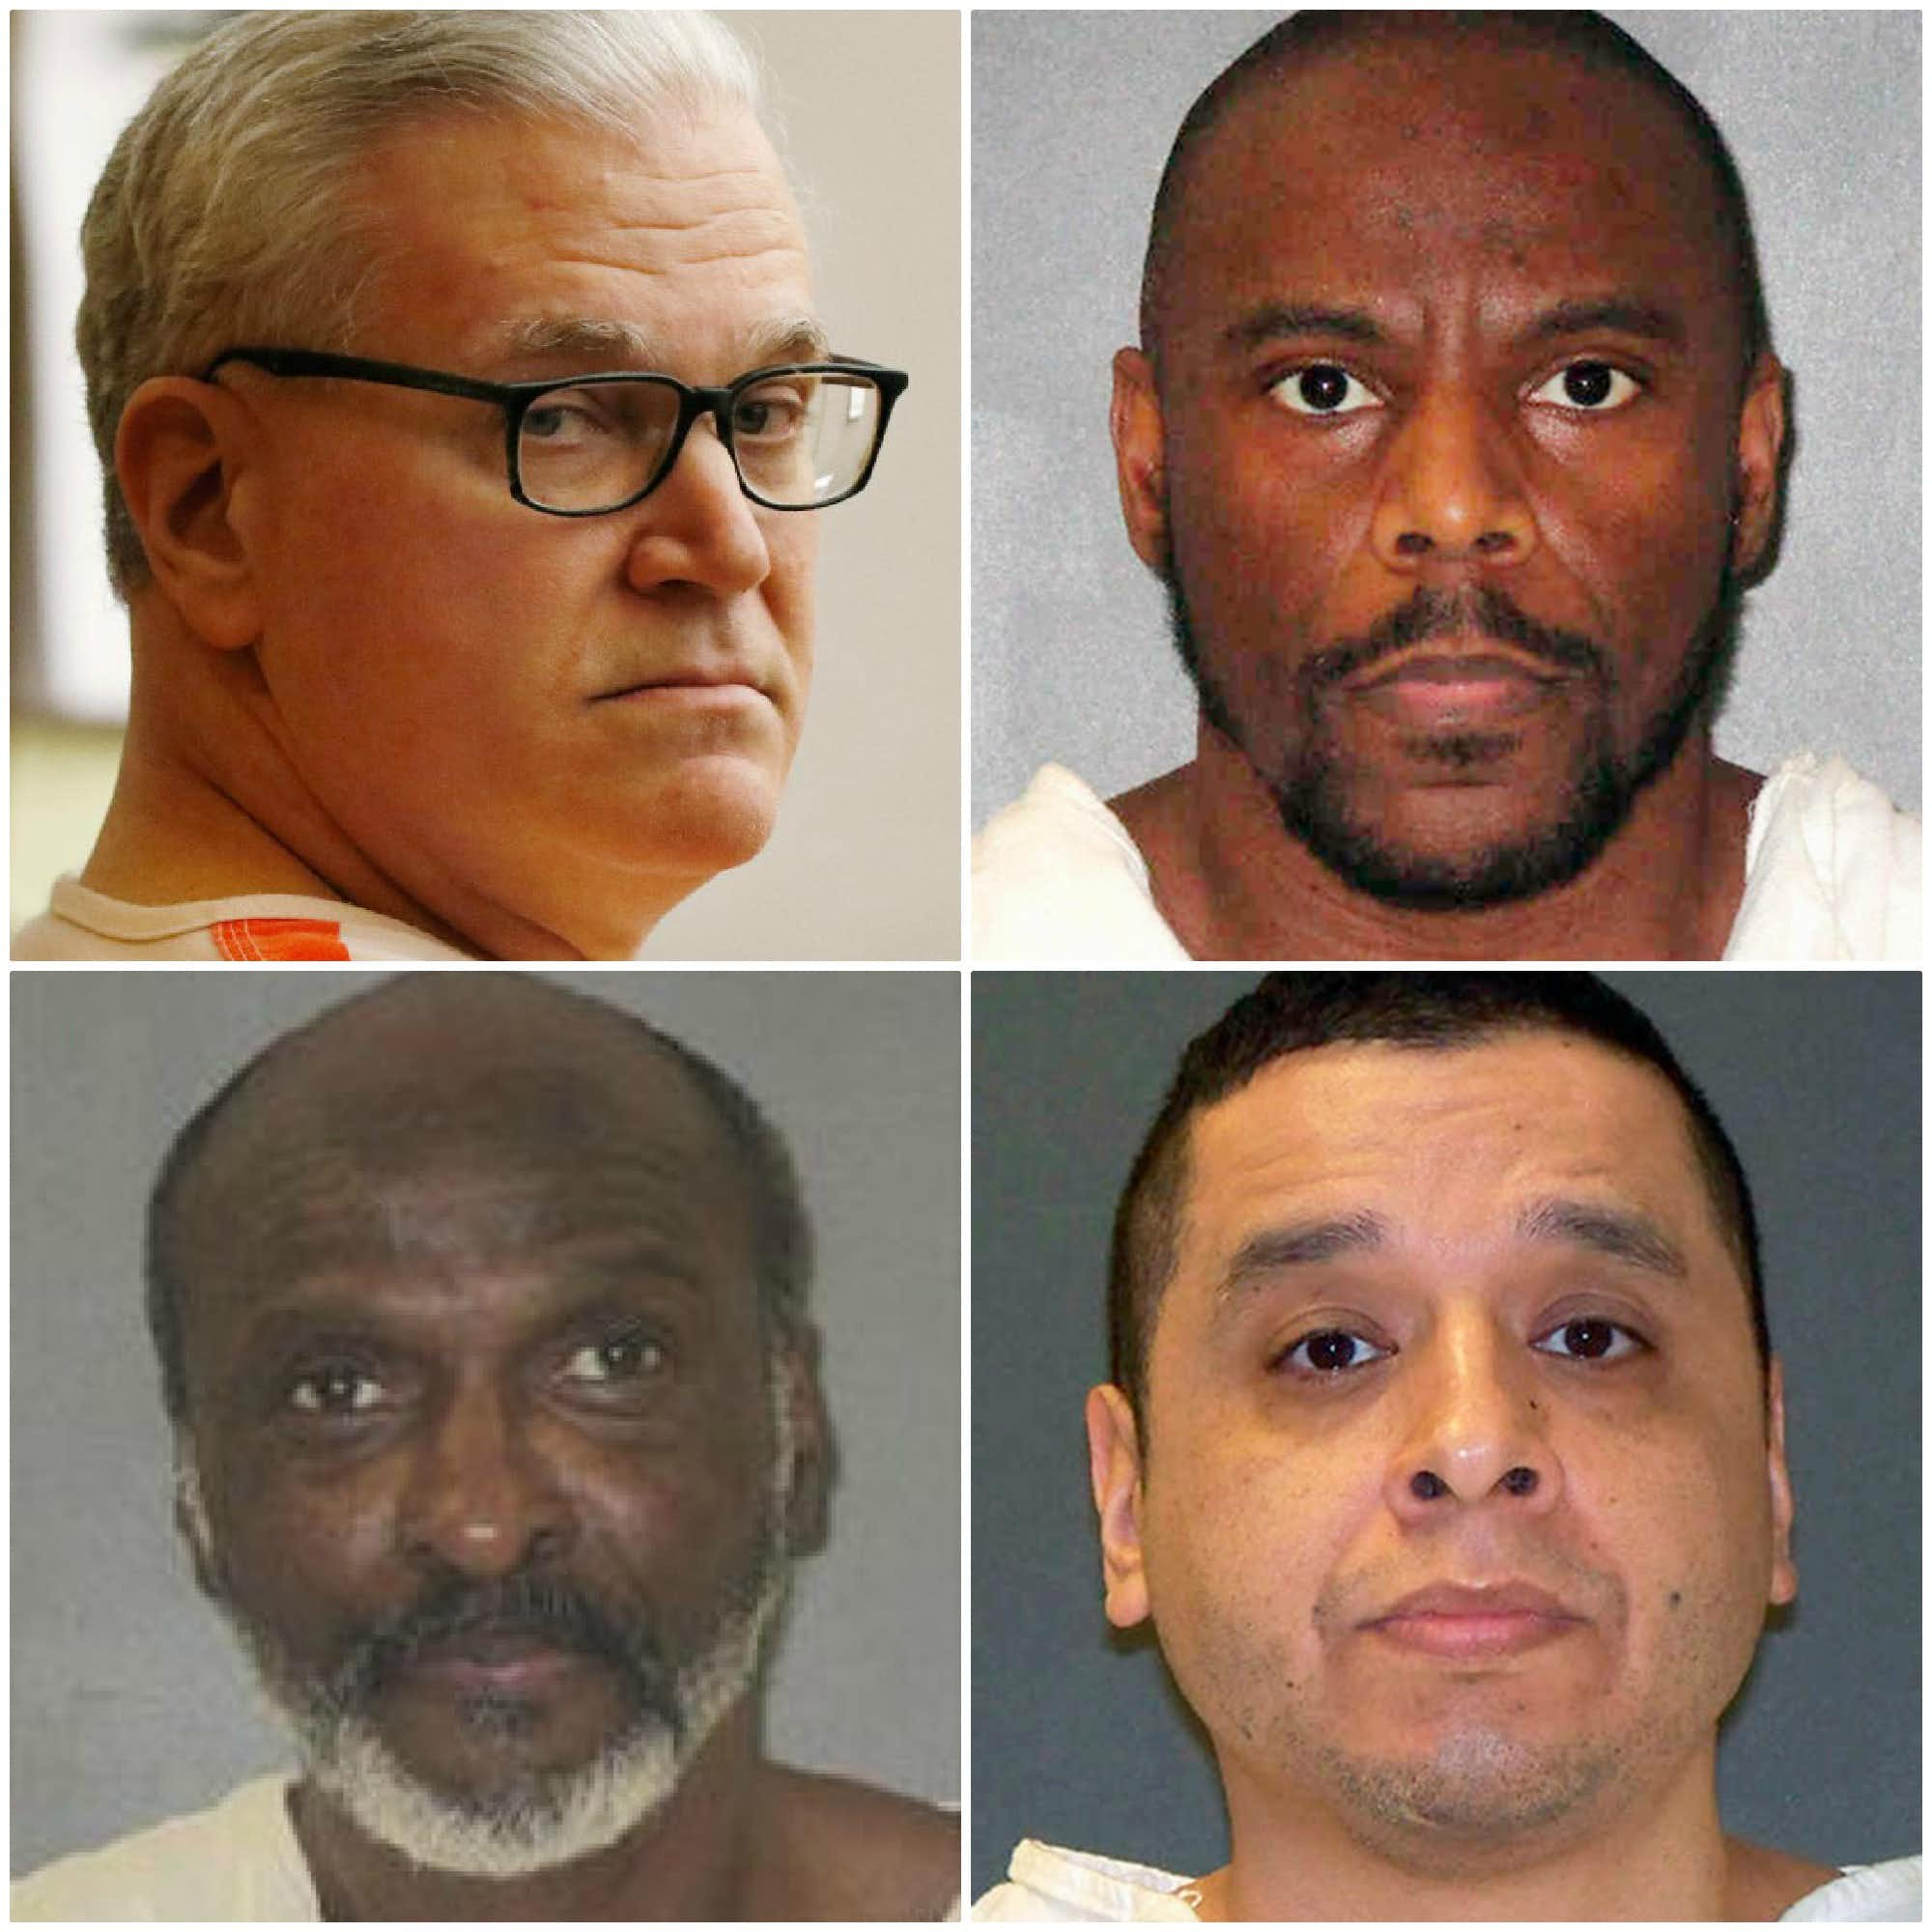 Texas again leads U.S. in executions in 2018, and Dallas was top county, with 4